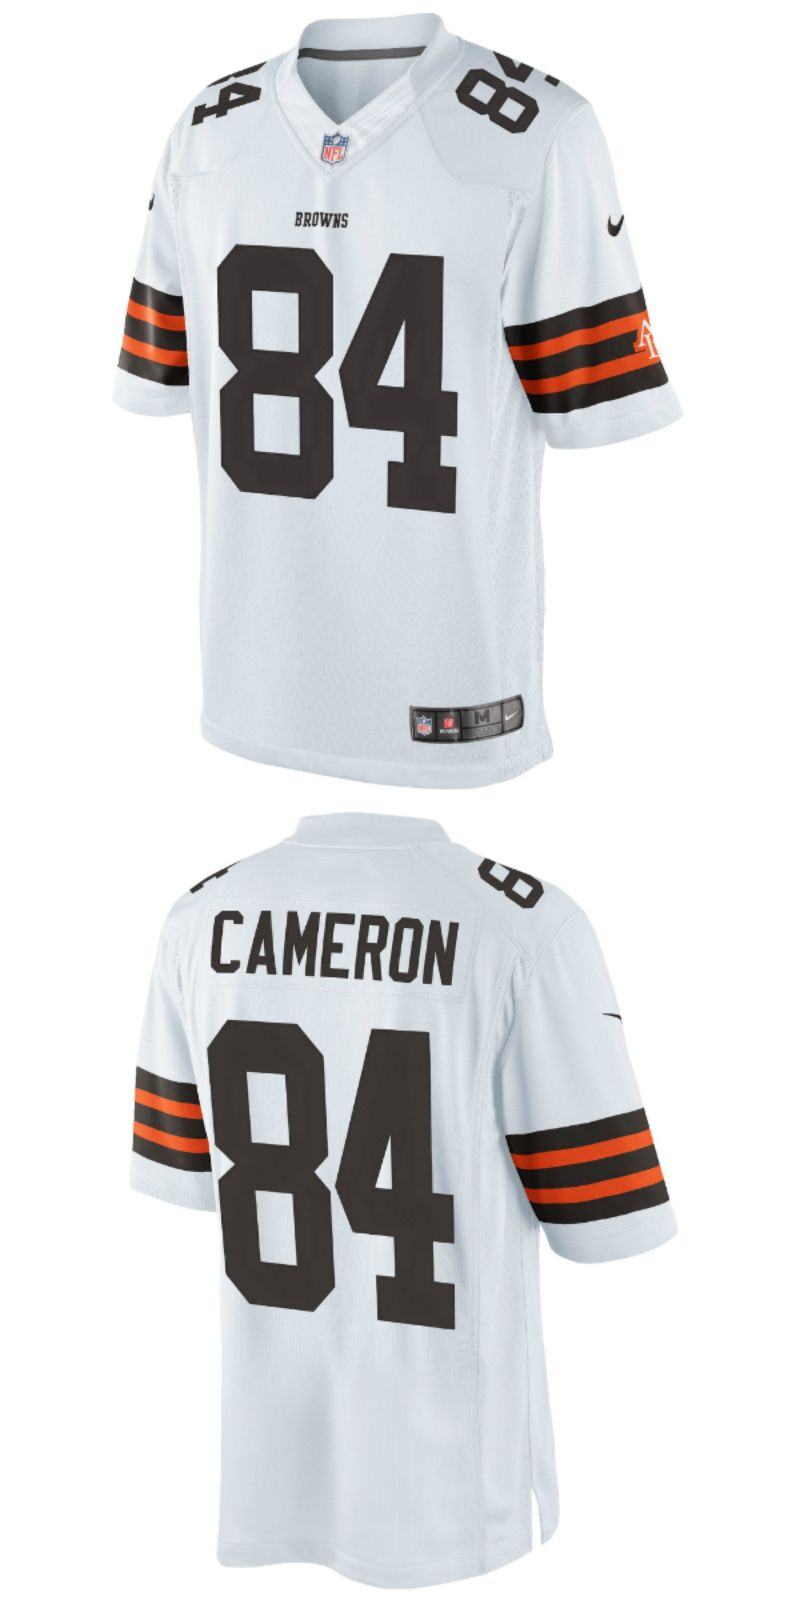 super popular 361db 28cea 2019 的UP TO 70% OFF. Jordan Cameron Cleveland Browns ...